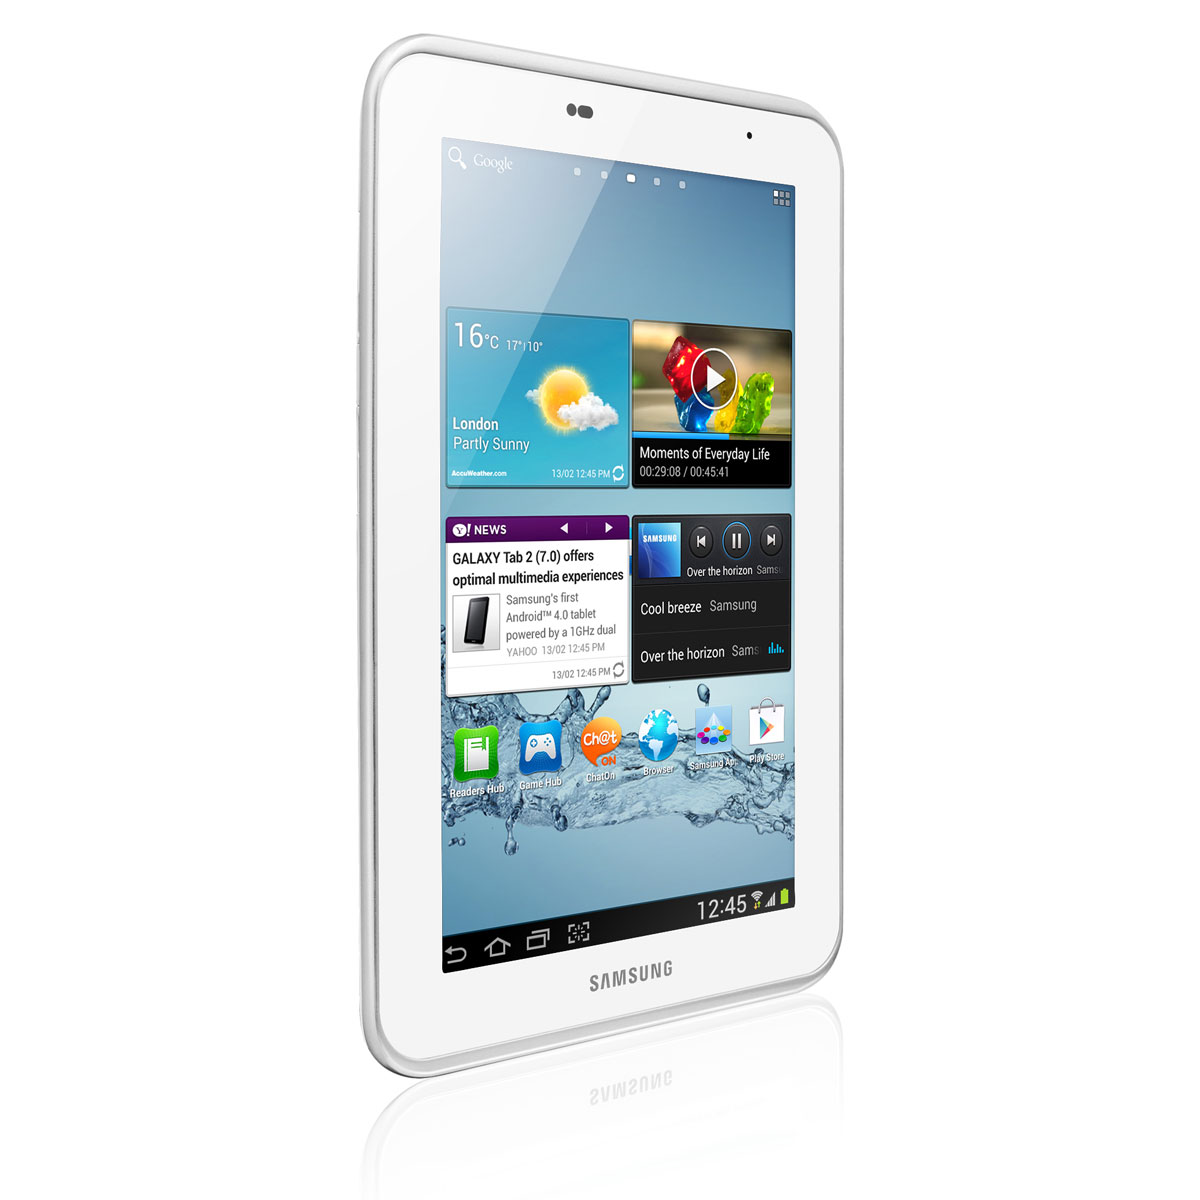 Samsung Galaxy Tab 7 0 2 Gt P3110 8 Go Blanc Gt P3110zwaxef Achat Vente Tablette Tactile